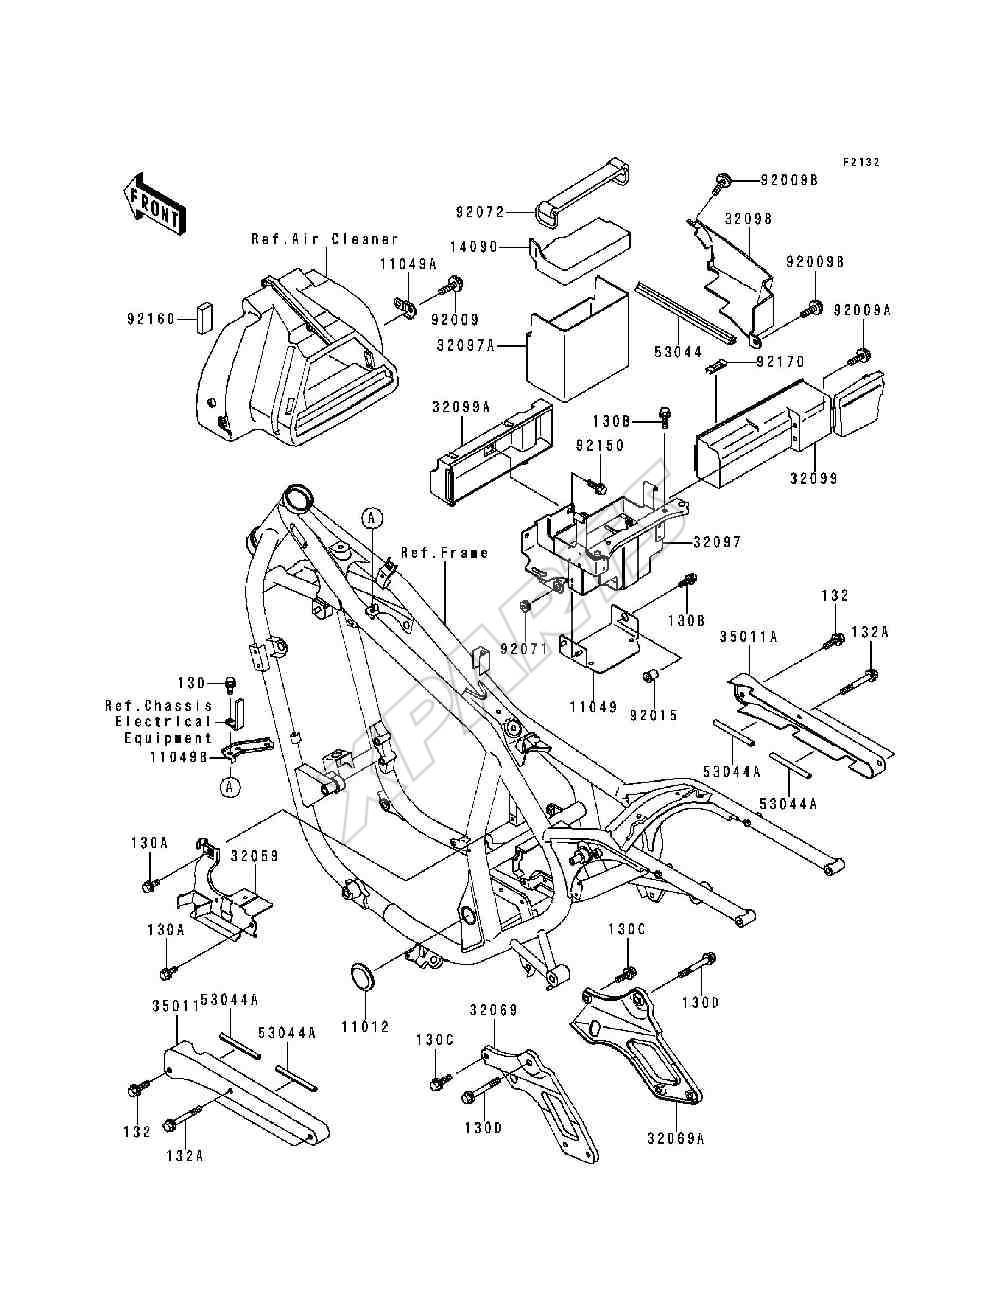 Kawasaki Vulcan Fuel Filter Location on kawasaki mule 3010 wiring diagram